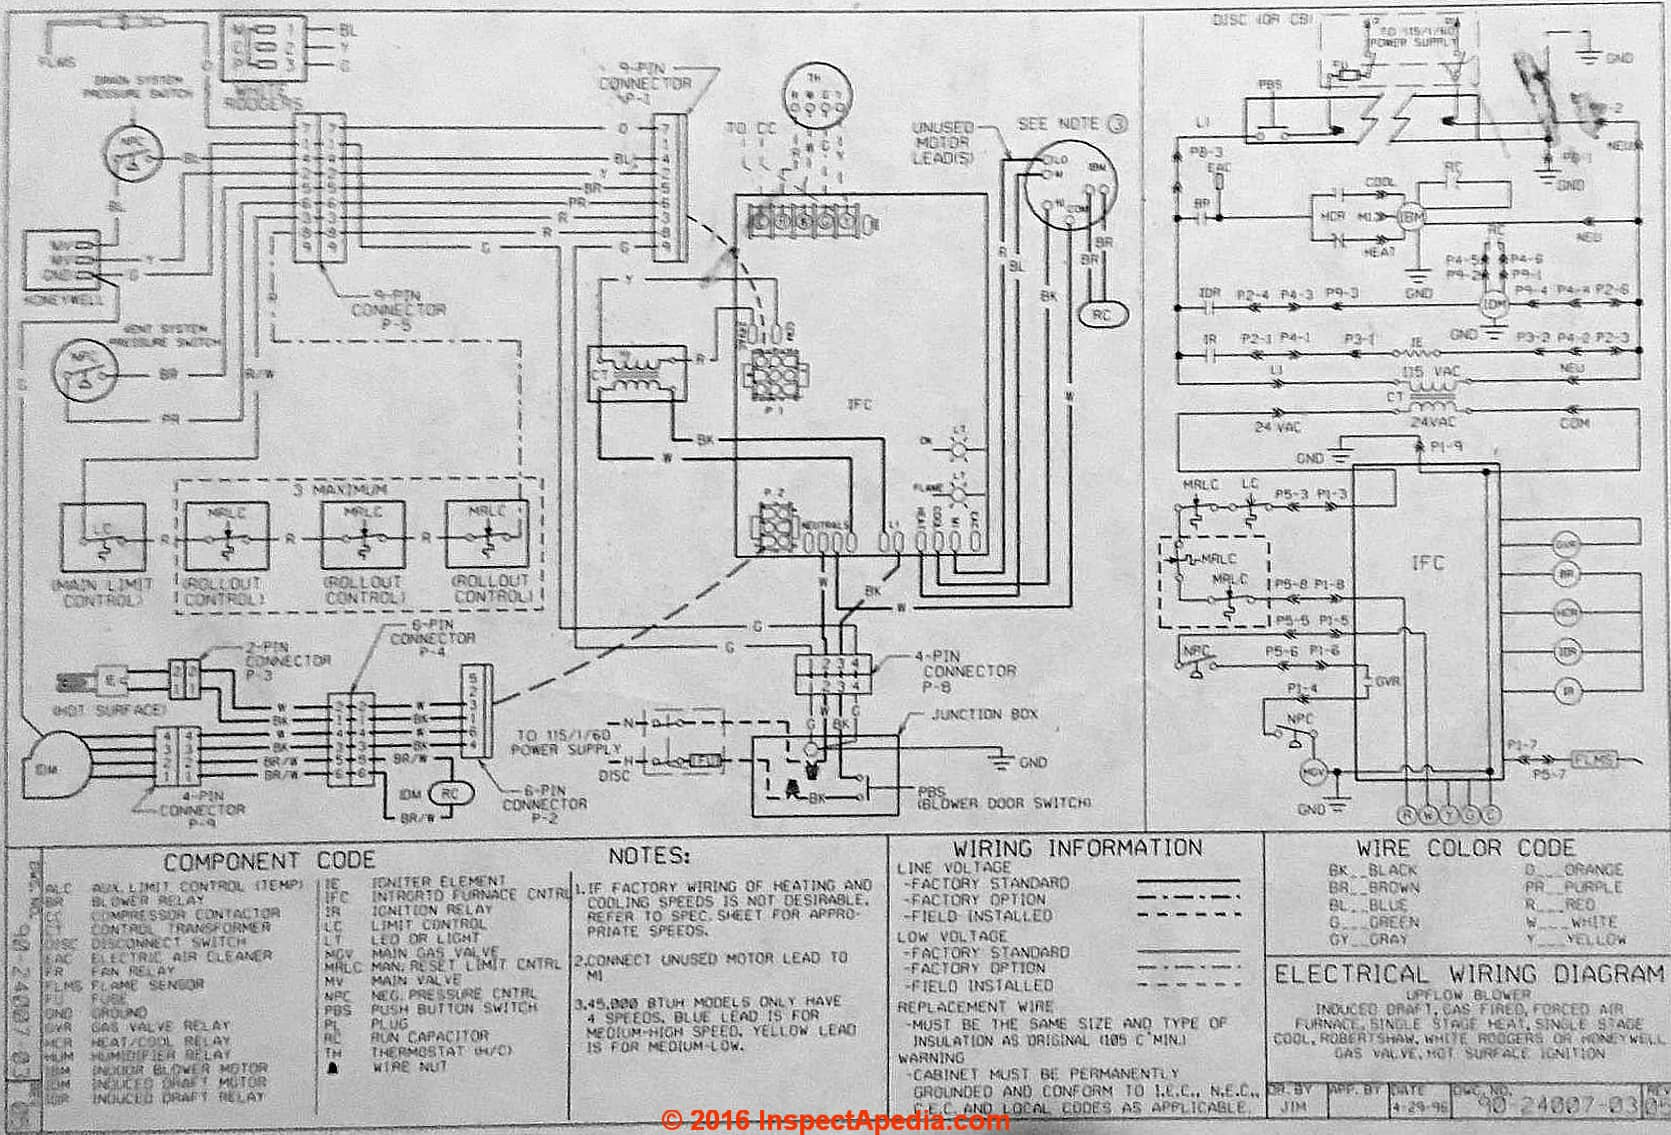 Rheem_AHU_Wiring_Diagram_IAP air conditioner heat pump faqs old rheem thermostat wiring diagram at aneh.co